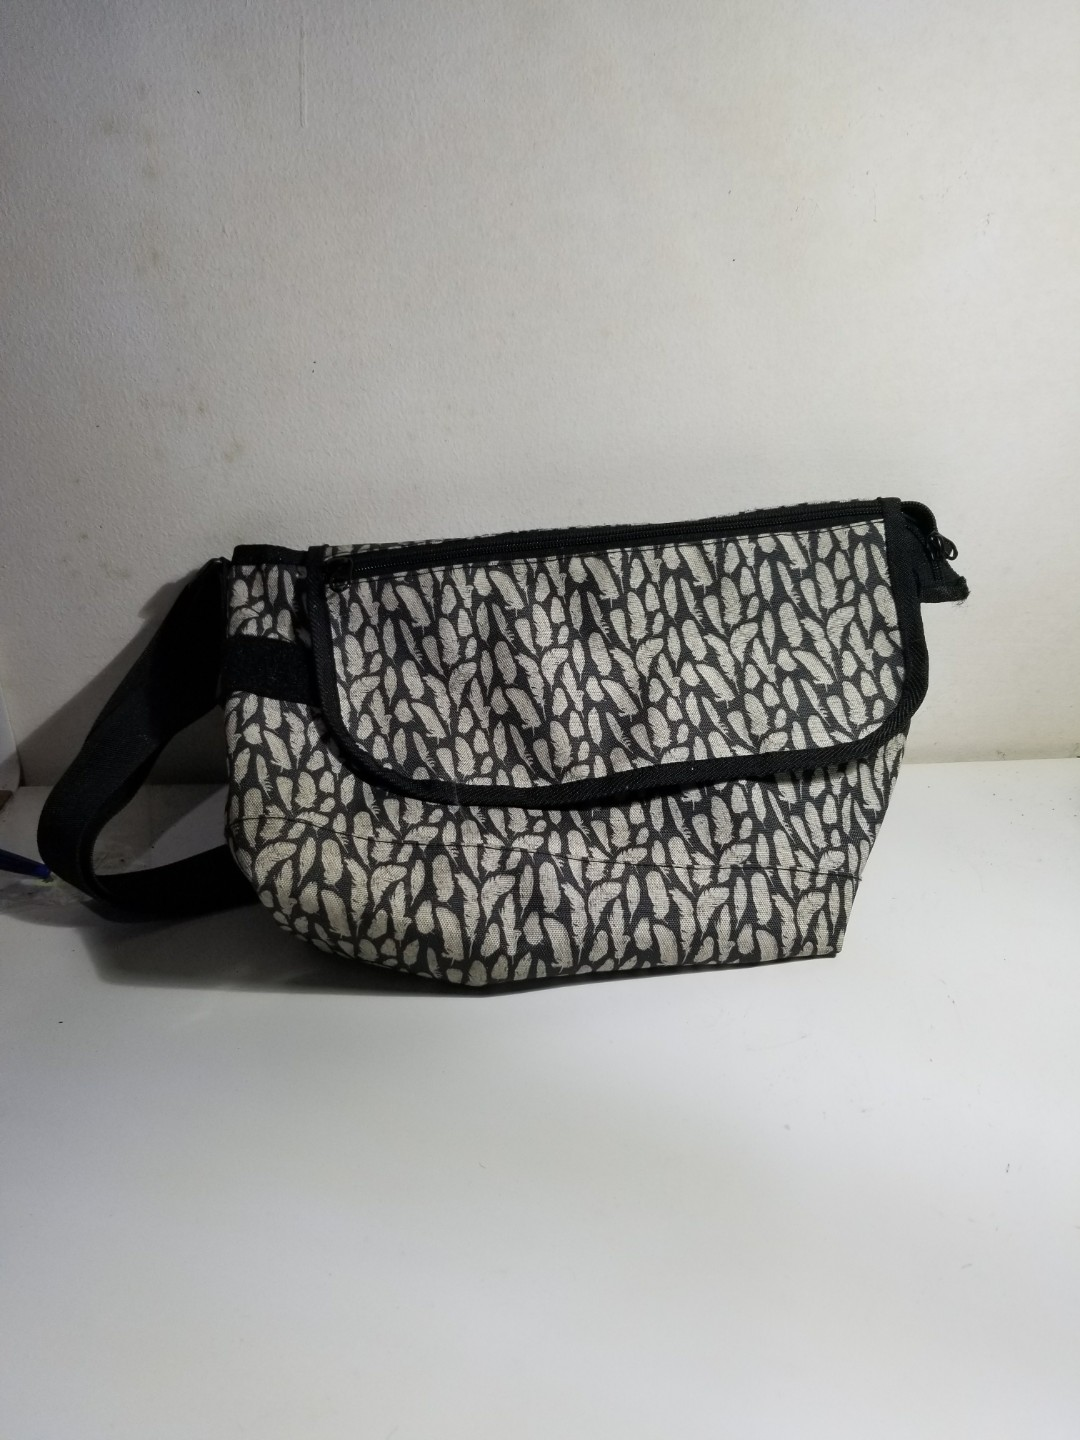 Sling bag local product